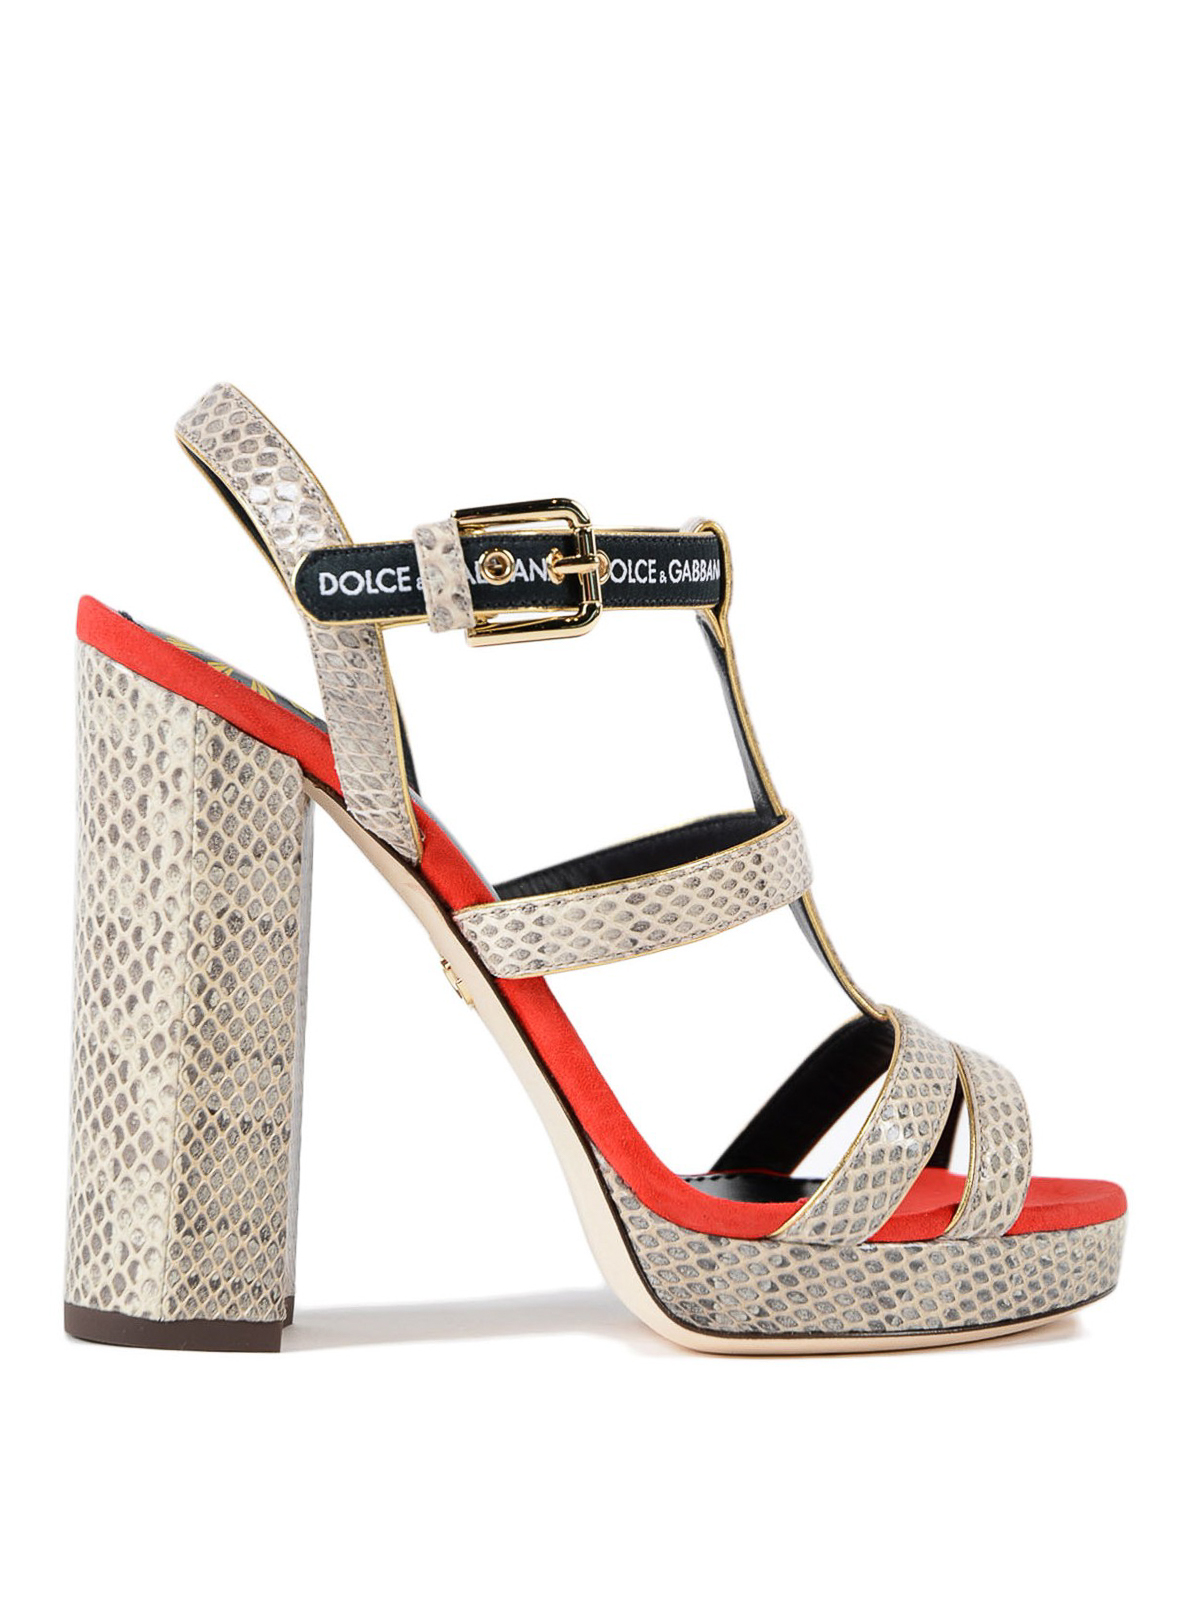 4693facc0347f Dolce   Gabbana - Keira ayers and suede heeled sandal - sandals ...